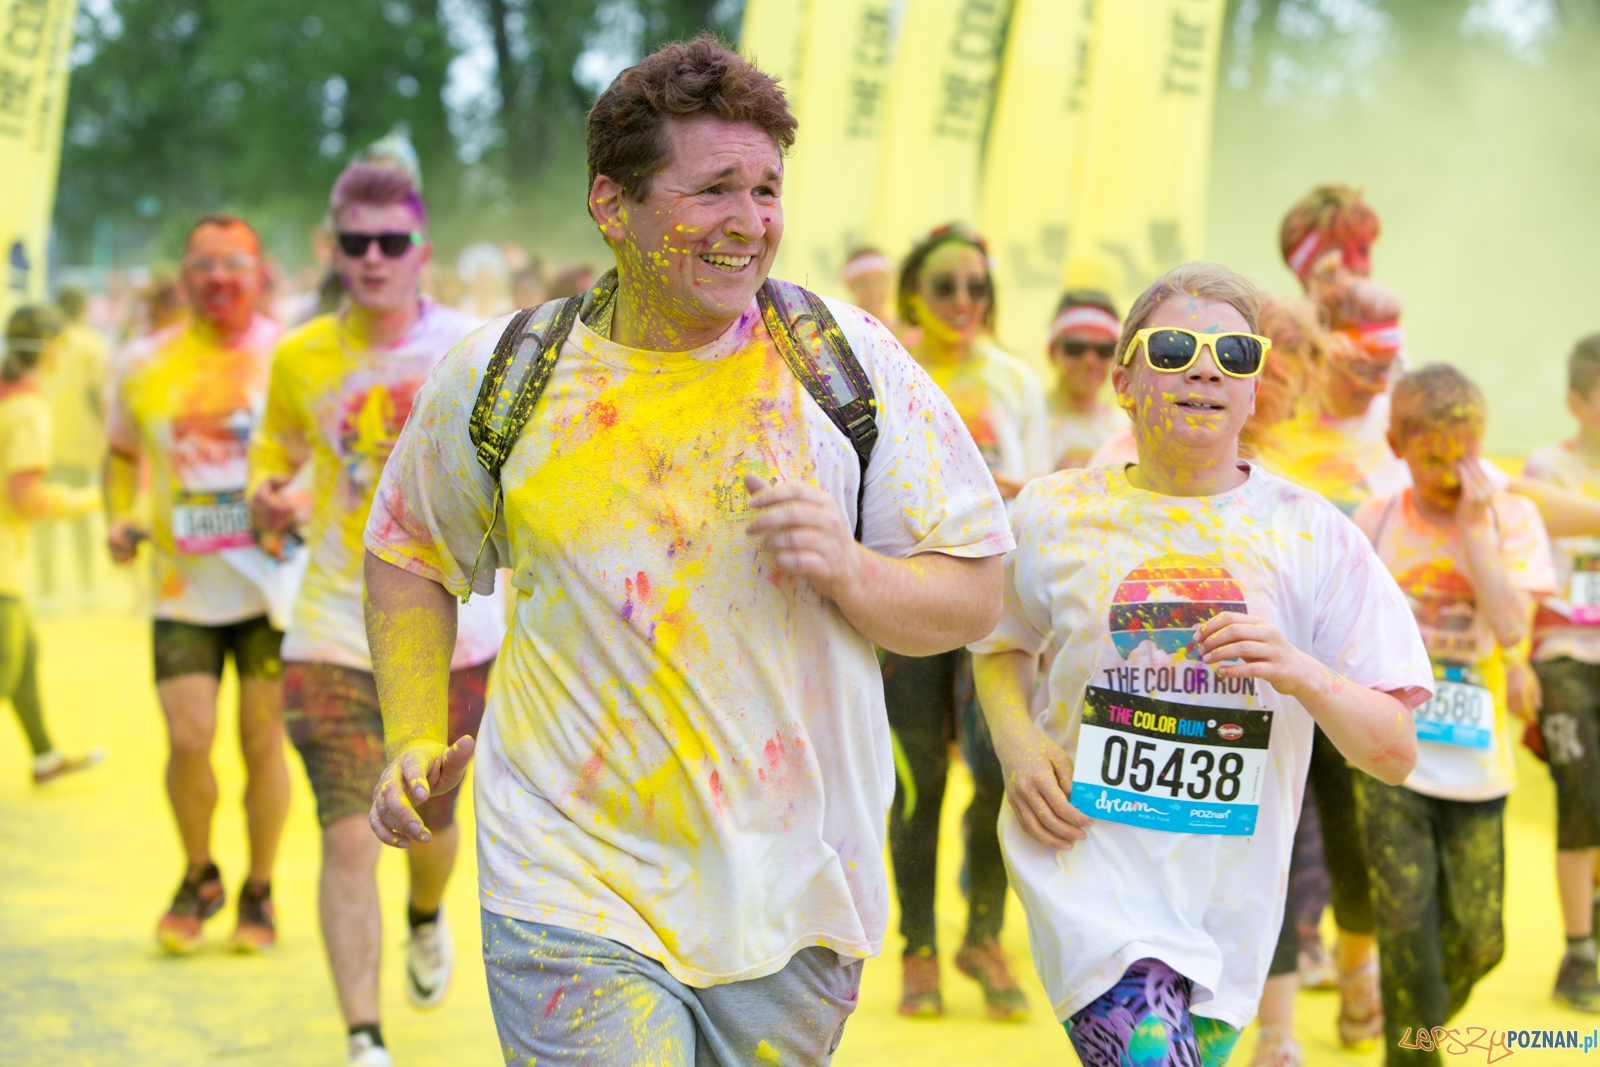 The Color Run - #Happiest5k  Foto: lepszyPOZNAN.pl/Piotr Rychter